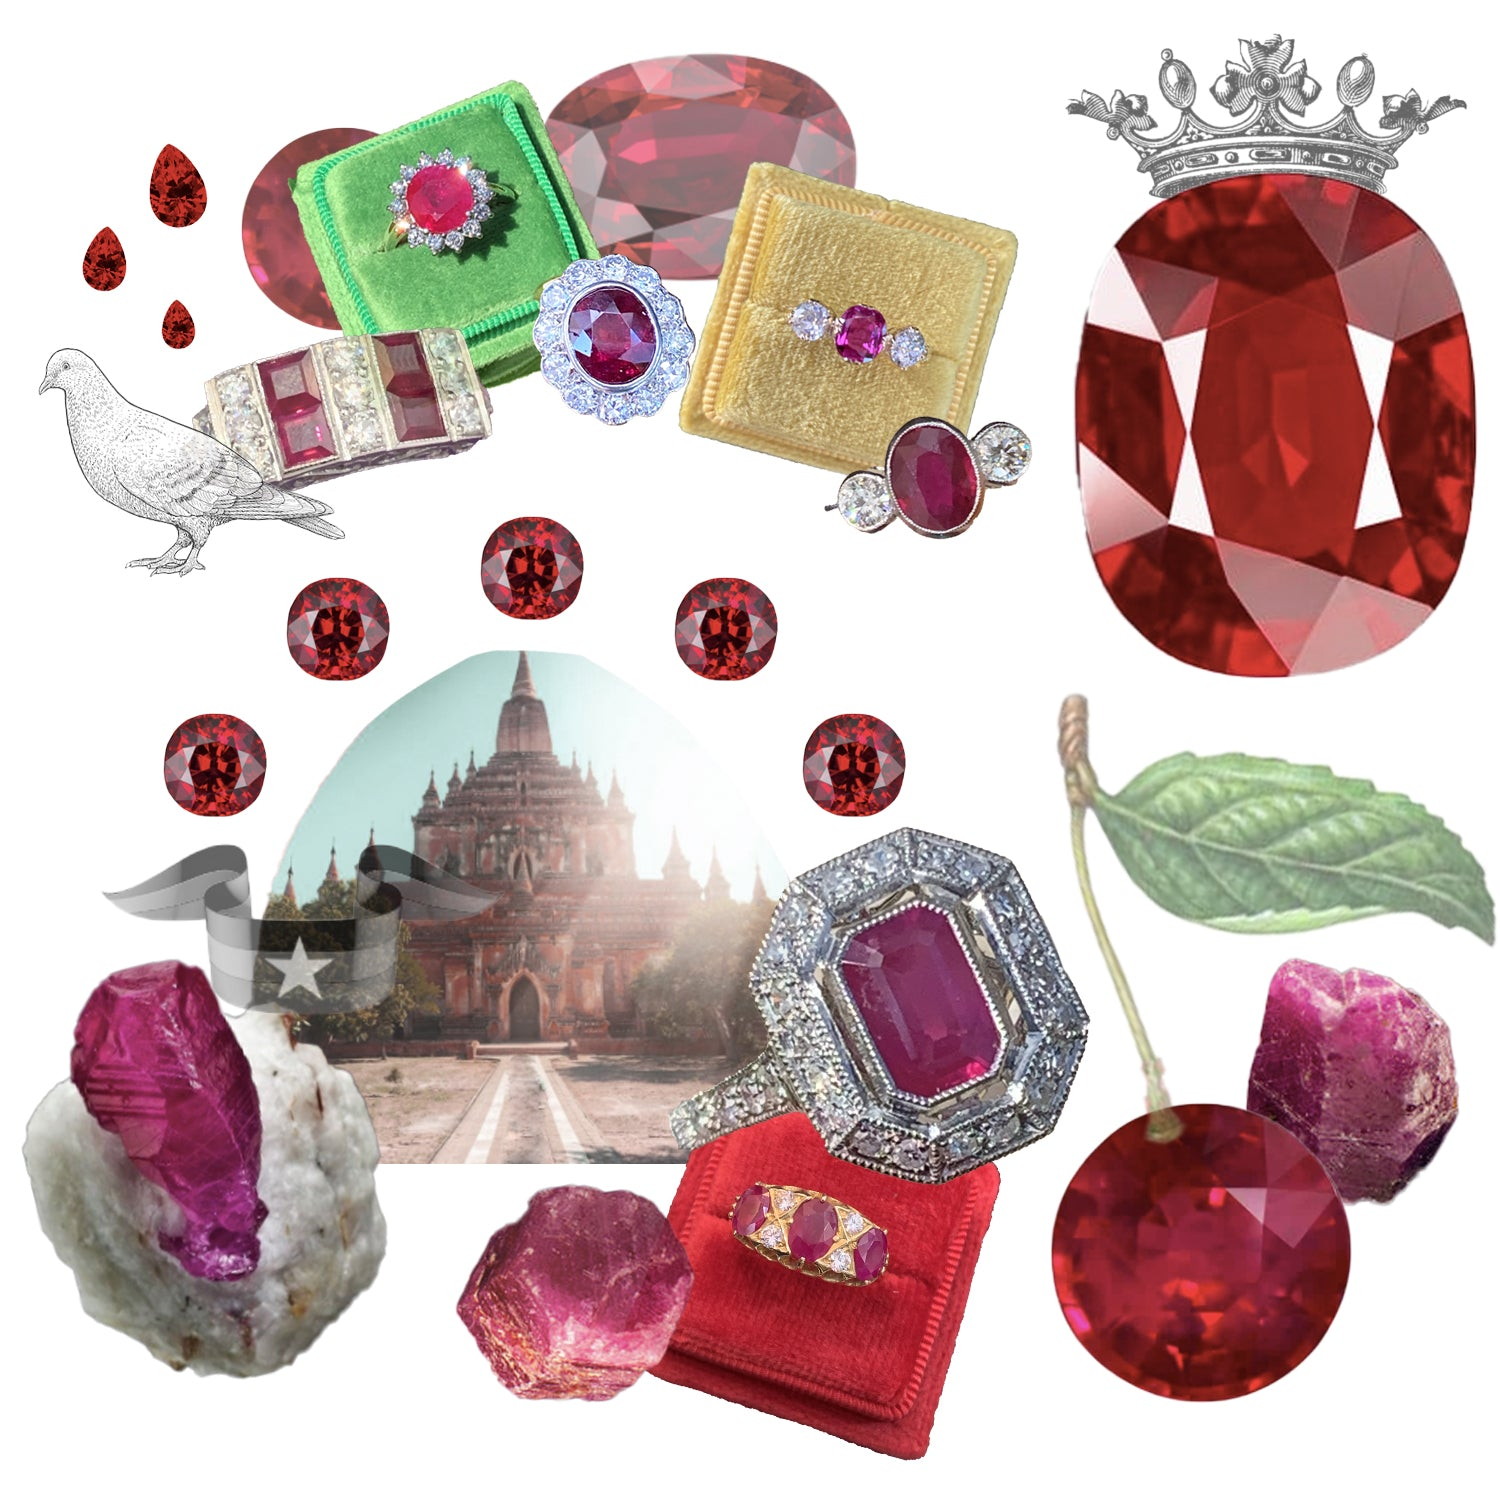 What are Rubies?